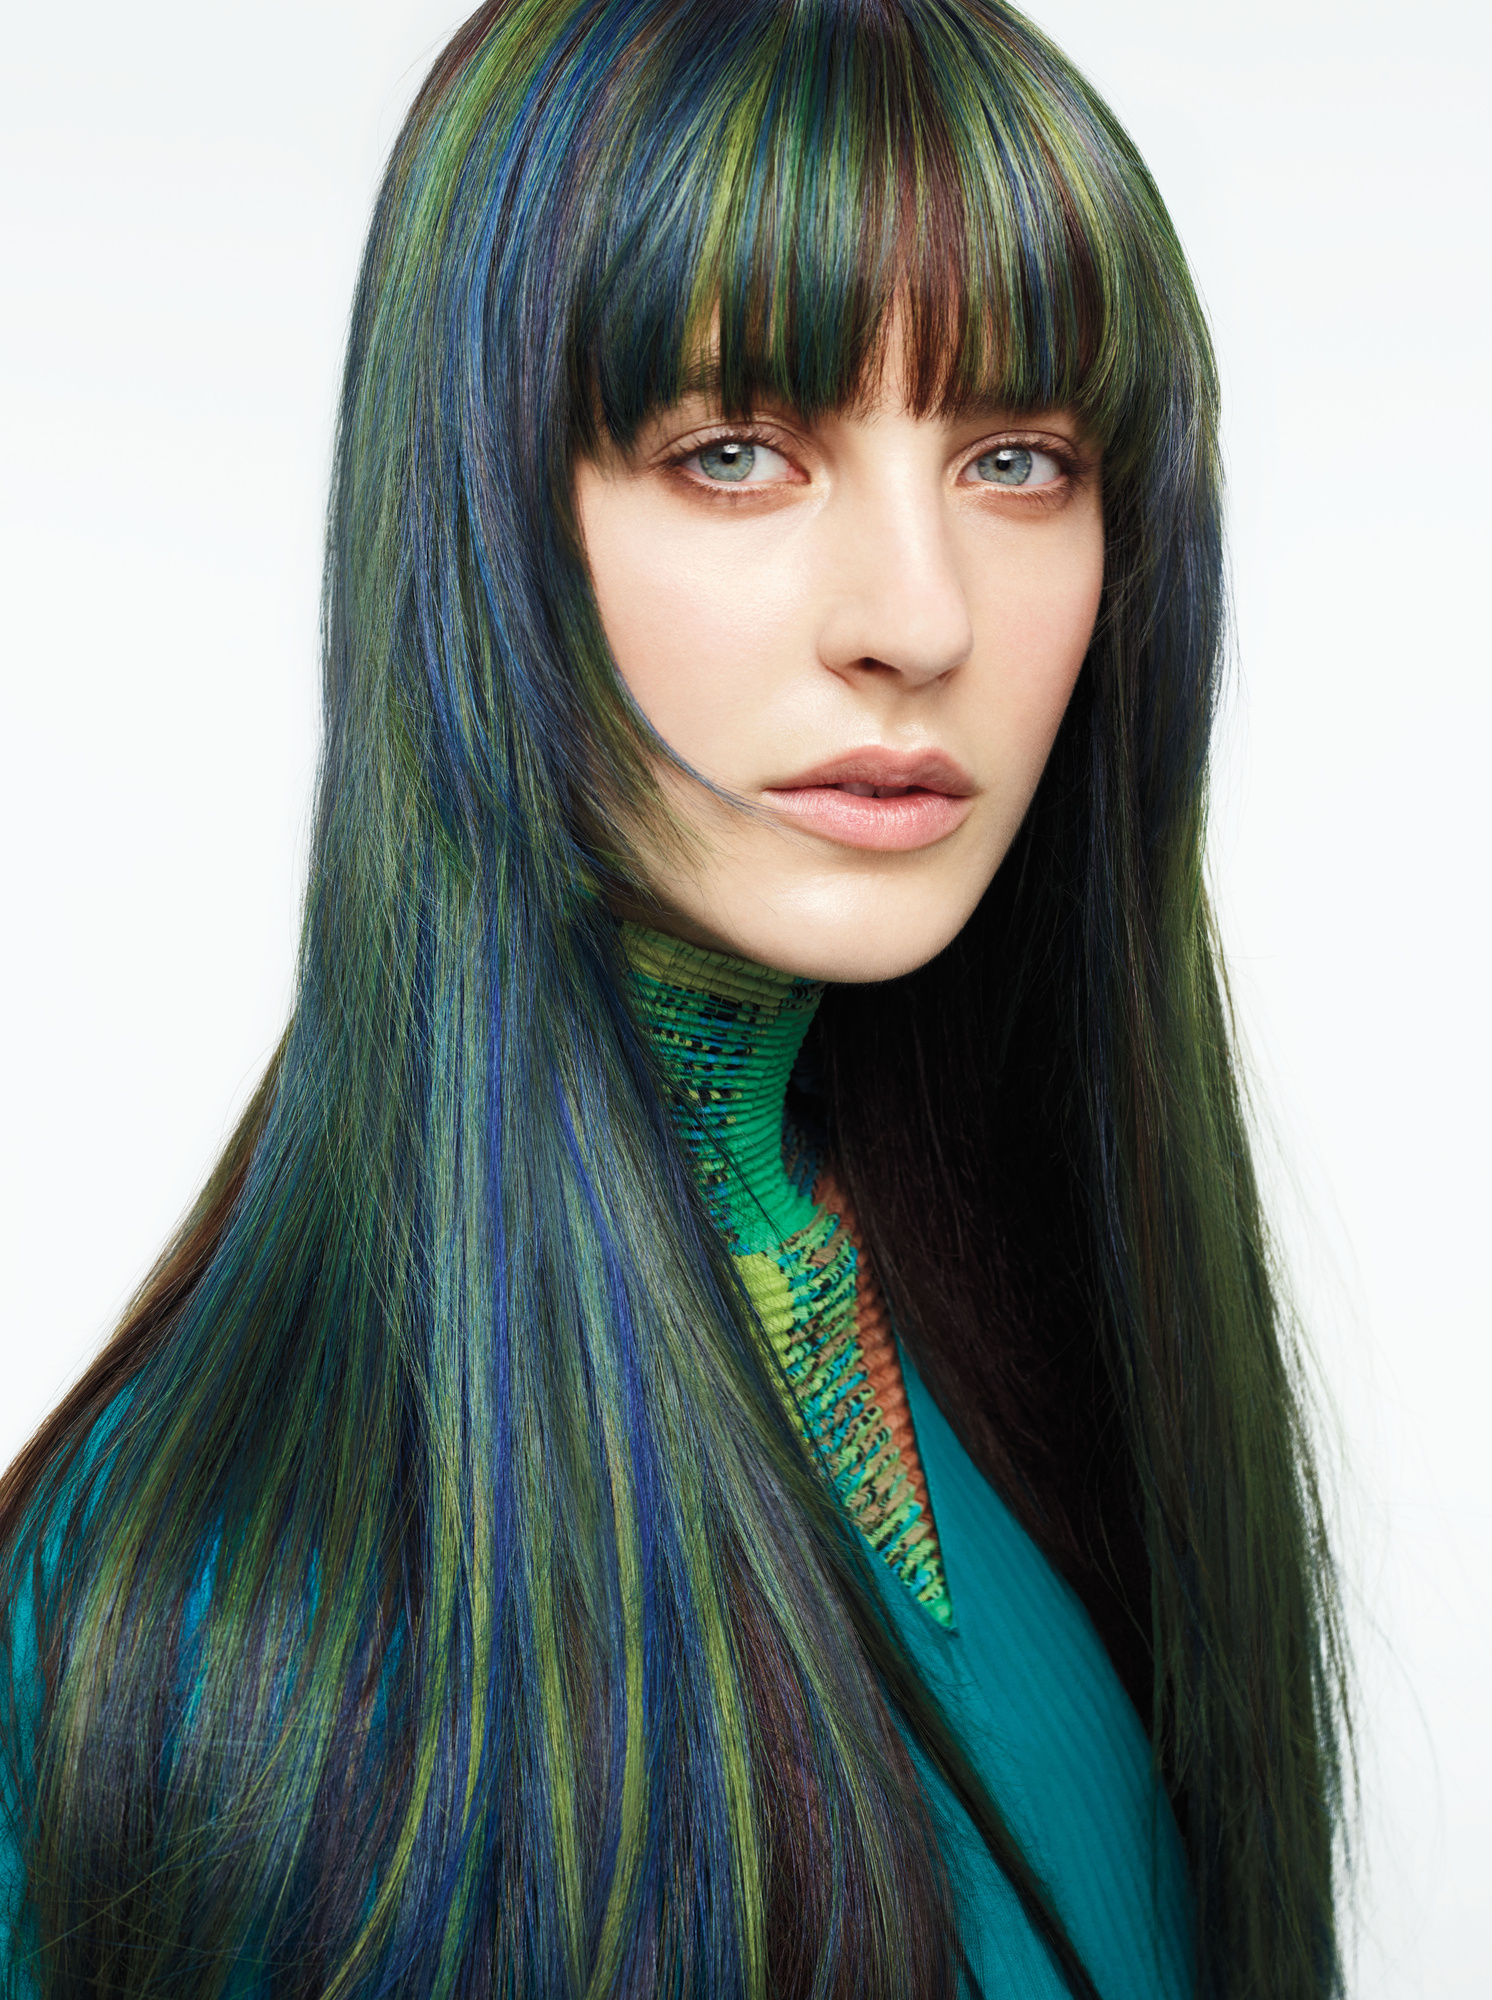 TEAM_CENTRAL_garbo_aveda_hair_salon_spa_best_austin_hair_color_nails_top_hair_stylist_men_hair_cut_austin_78757_atx_78741_hair_salon_near_me_austin_hairdress.jpg